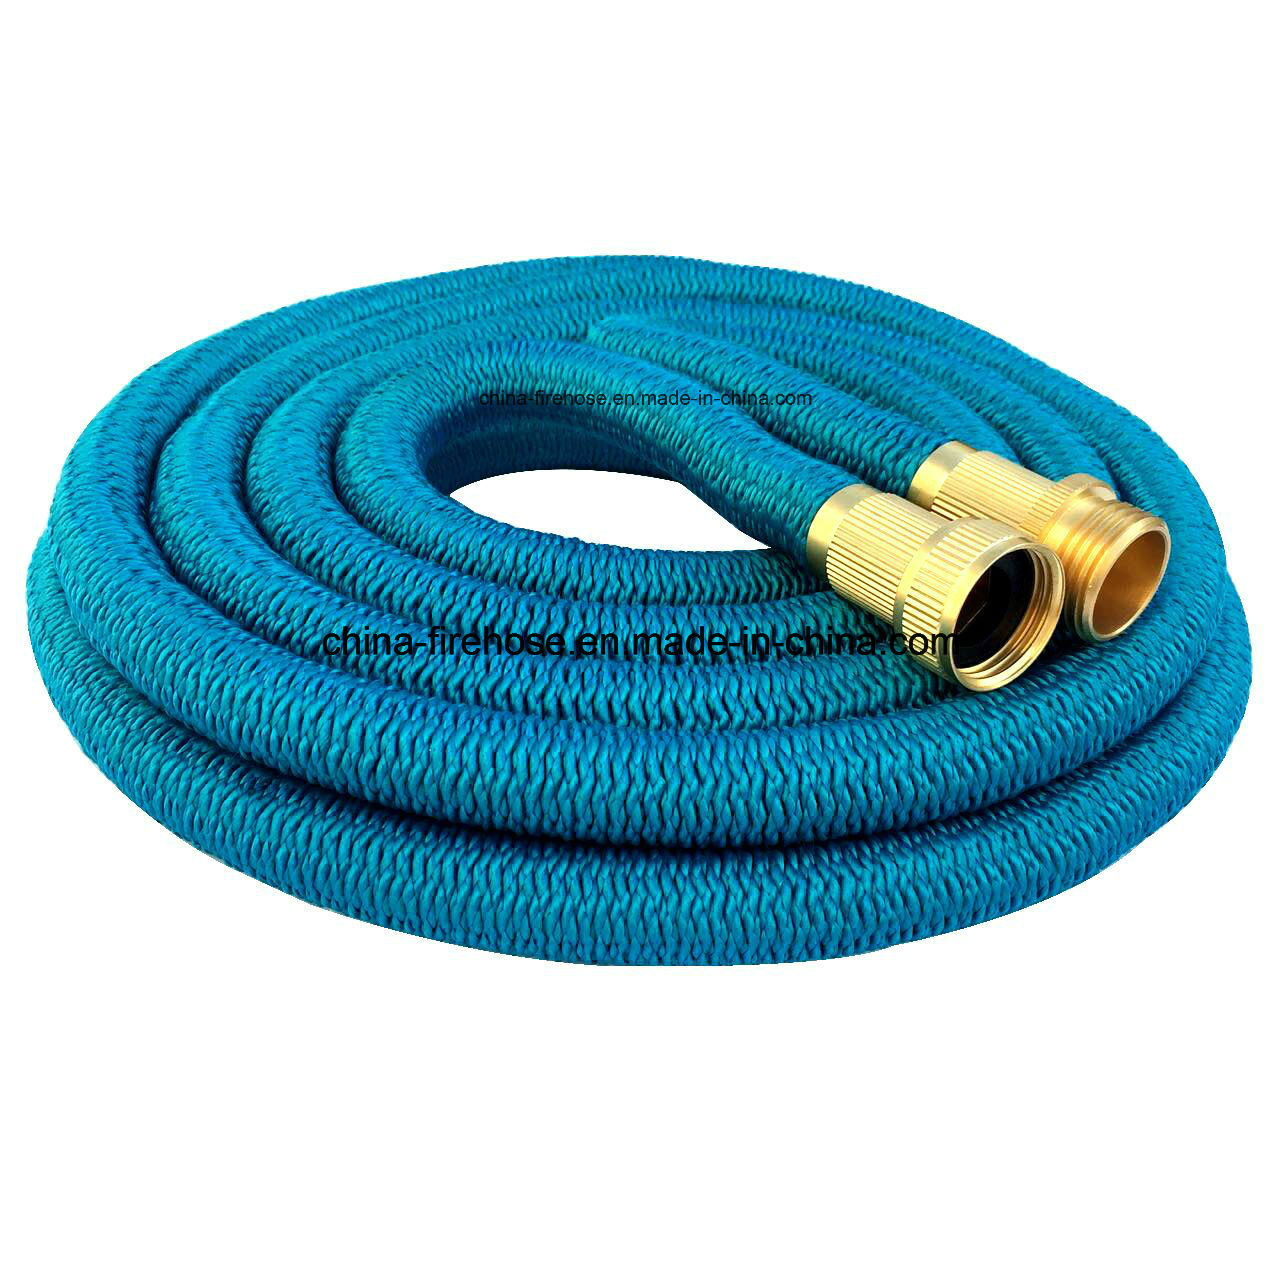 50FT Upgrade Garden Hose Europe Ribbon Telescopic Water Pipe Thread Telescopic Pipes Washing The Garden.